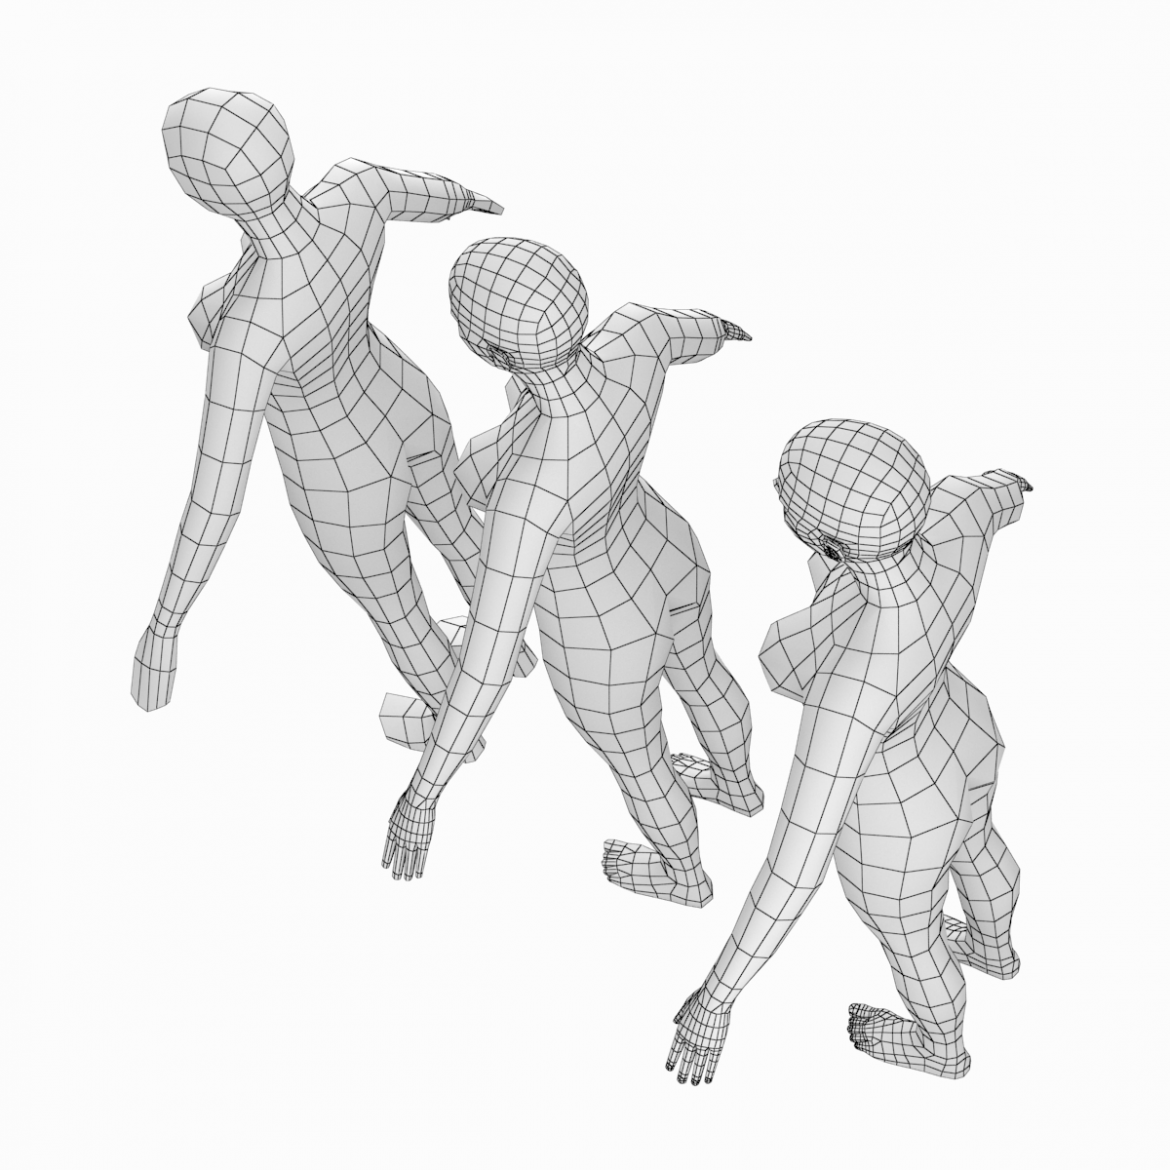 female base mesh natural proportions in a-pose 3d model 3ds max dxf dwg fbx c4d dae ma mb  obj 301360